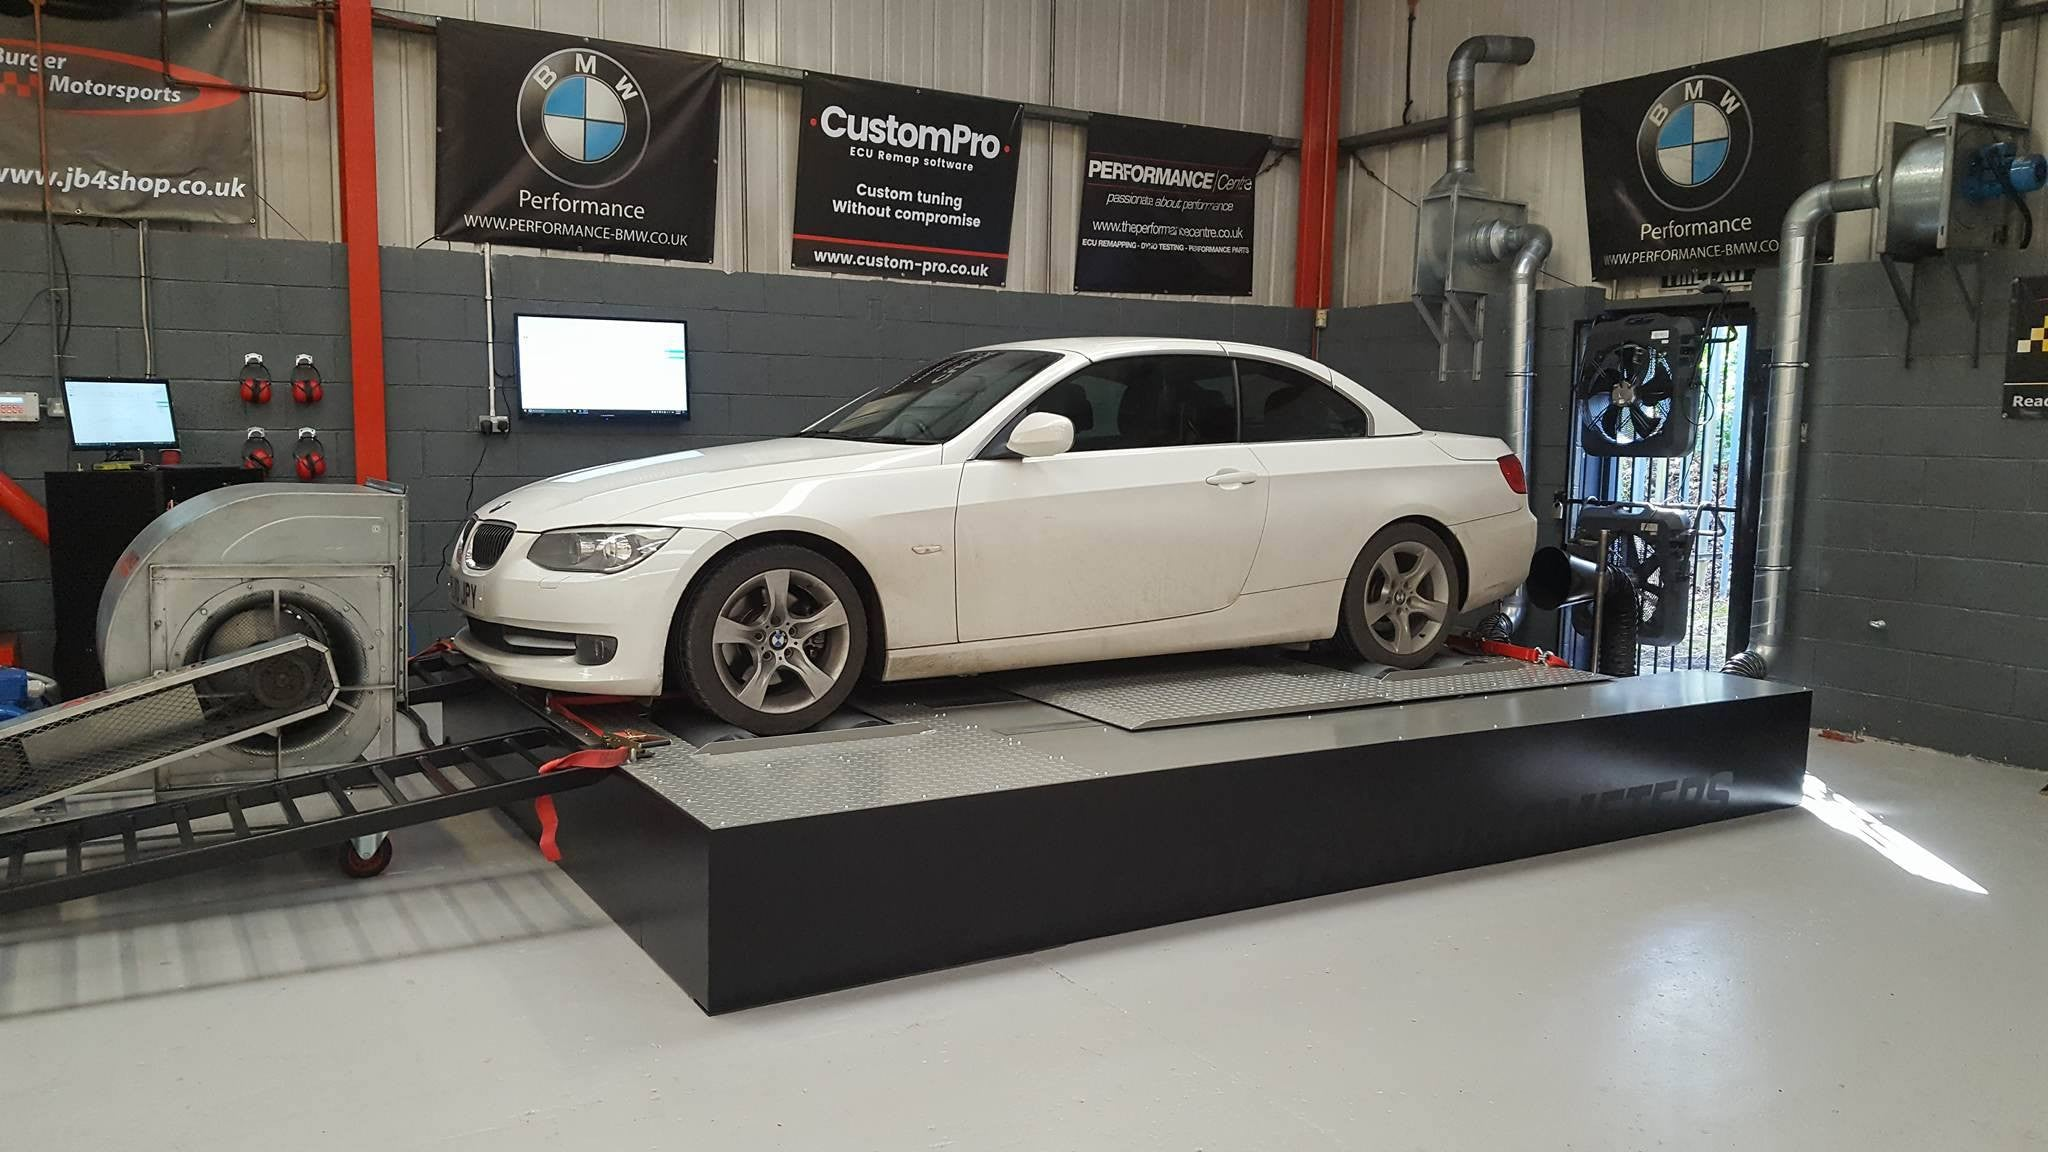 BMW 325i N53 - CustomPro remap software